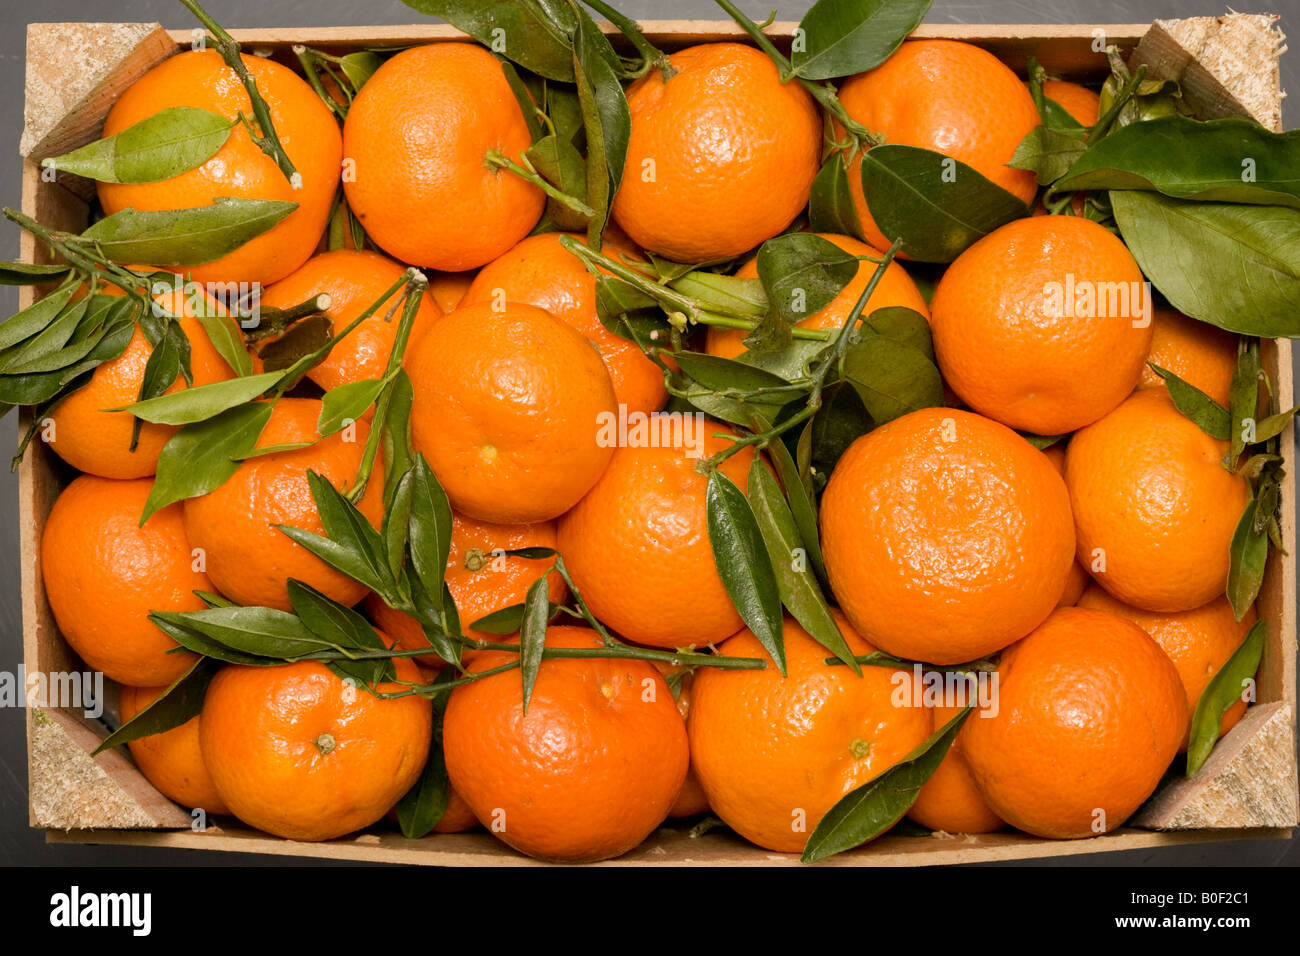 Box of clementines London England United Kingdom - Stock Image